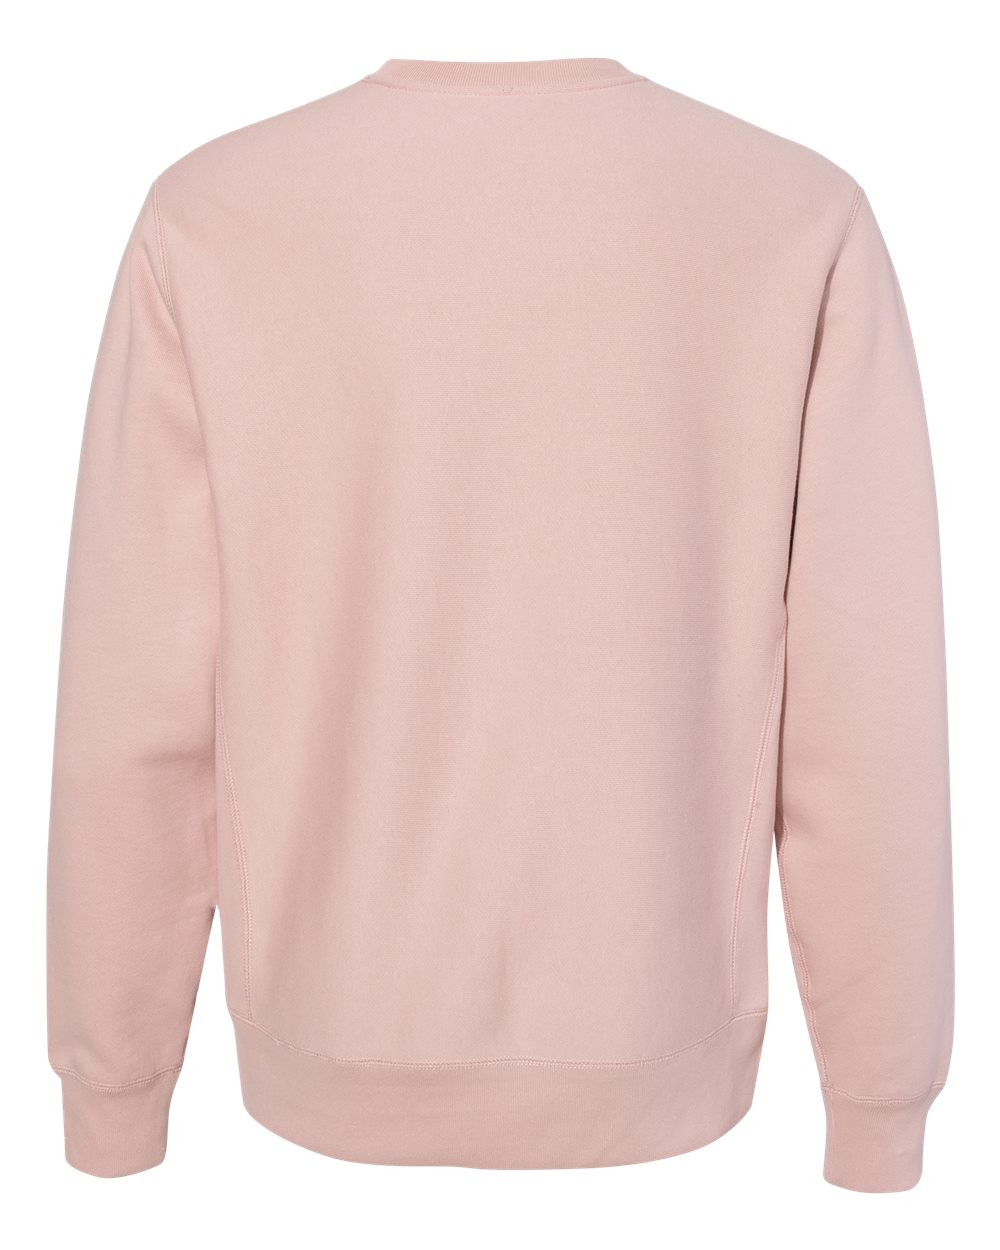 Independent-Trading-Co-Mens-Premium-Heavyweight-Cross-Grain-Sweatshirt-IND5000C thumbnail 19